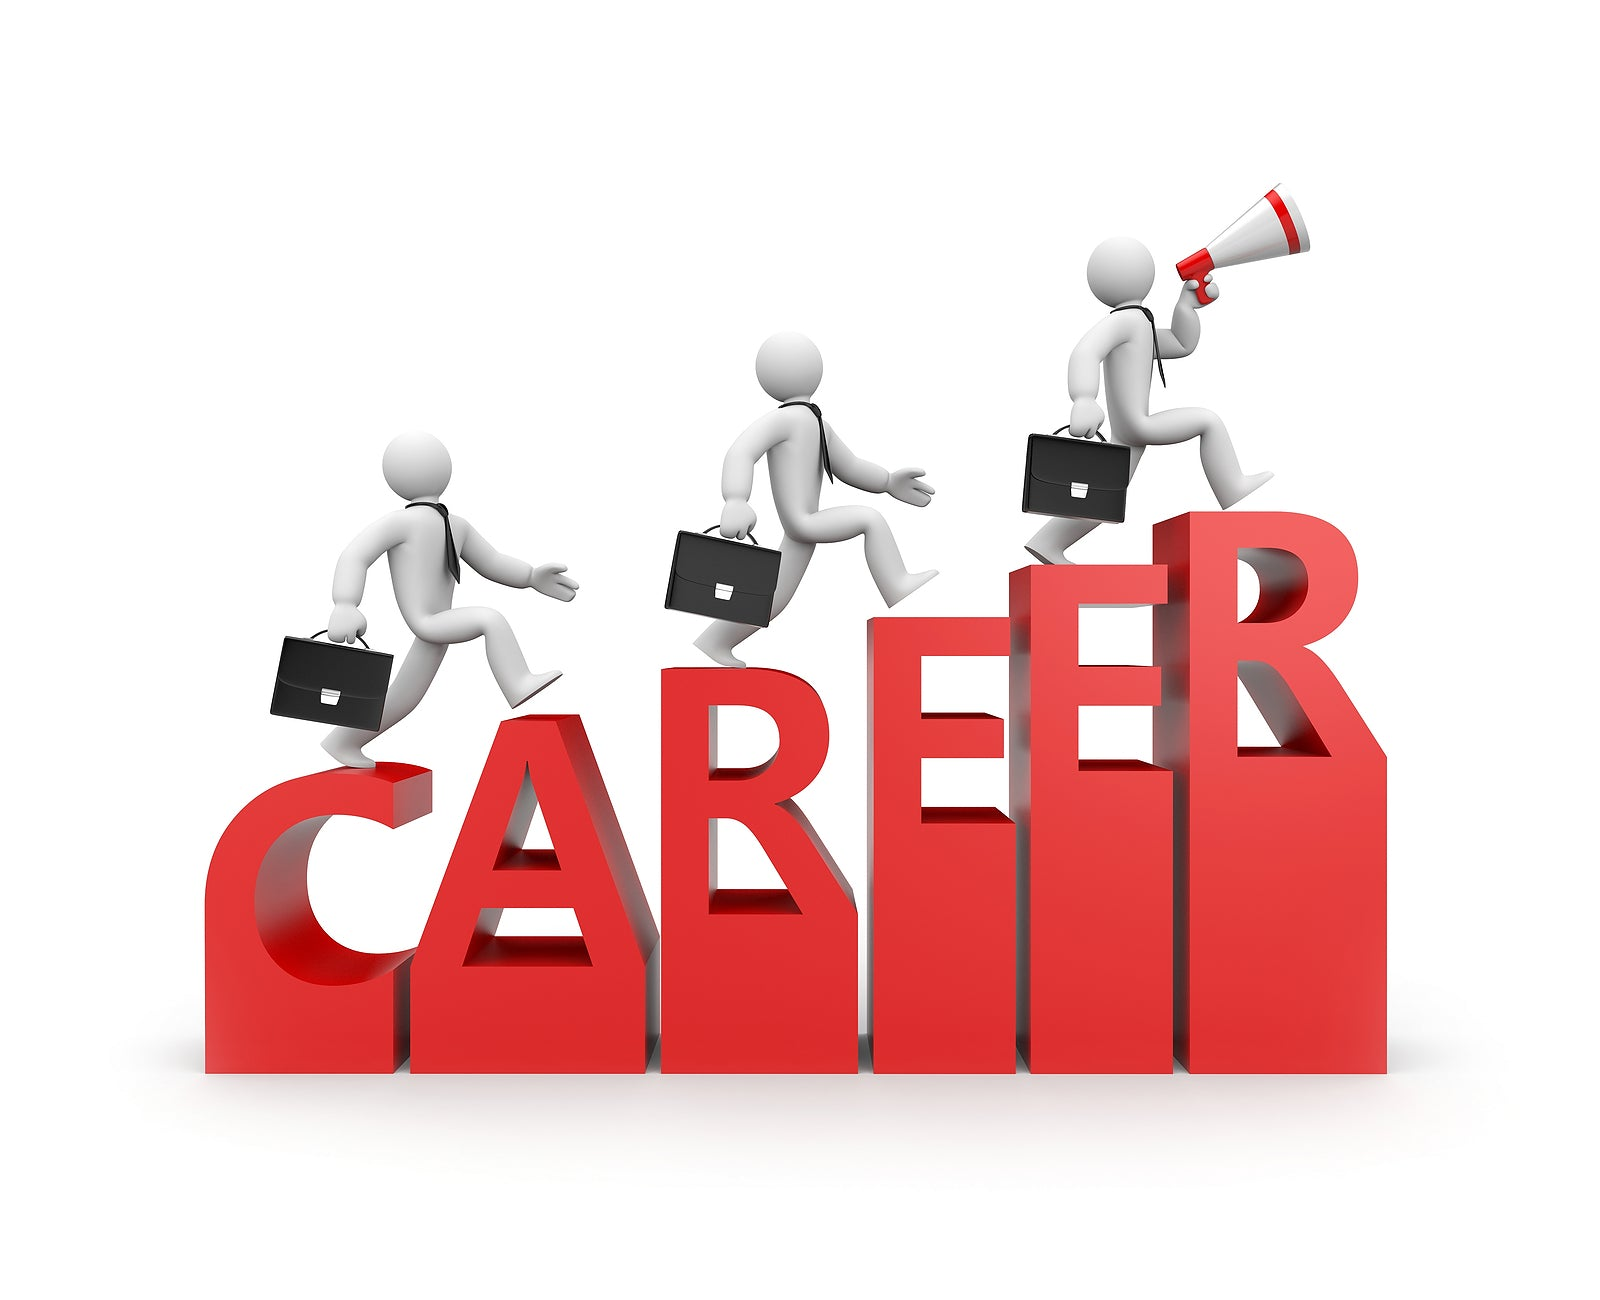 Careers with Mobilia uno